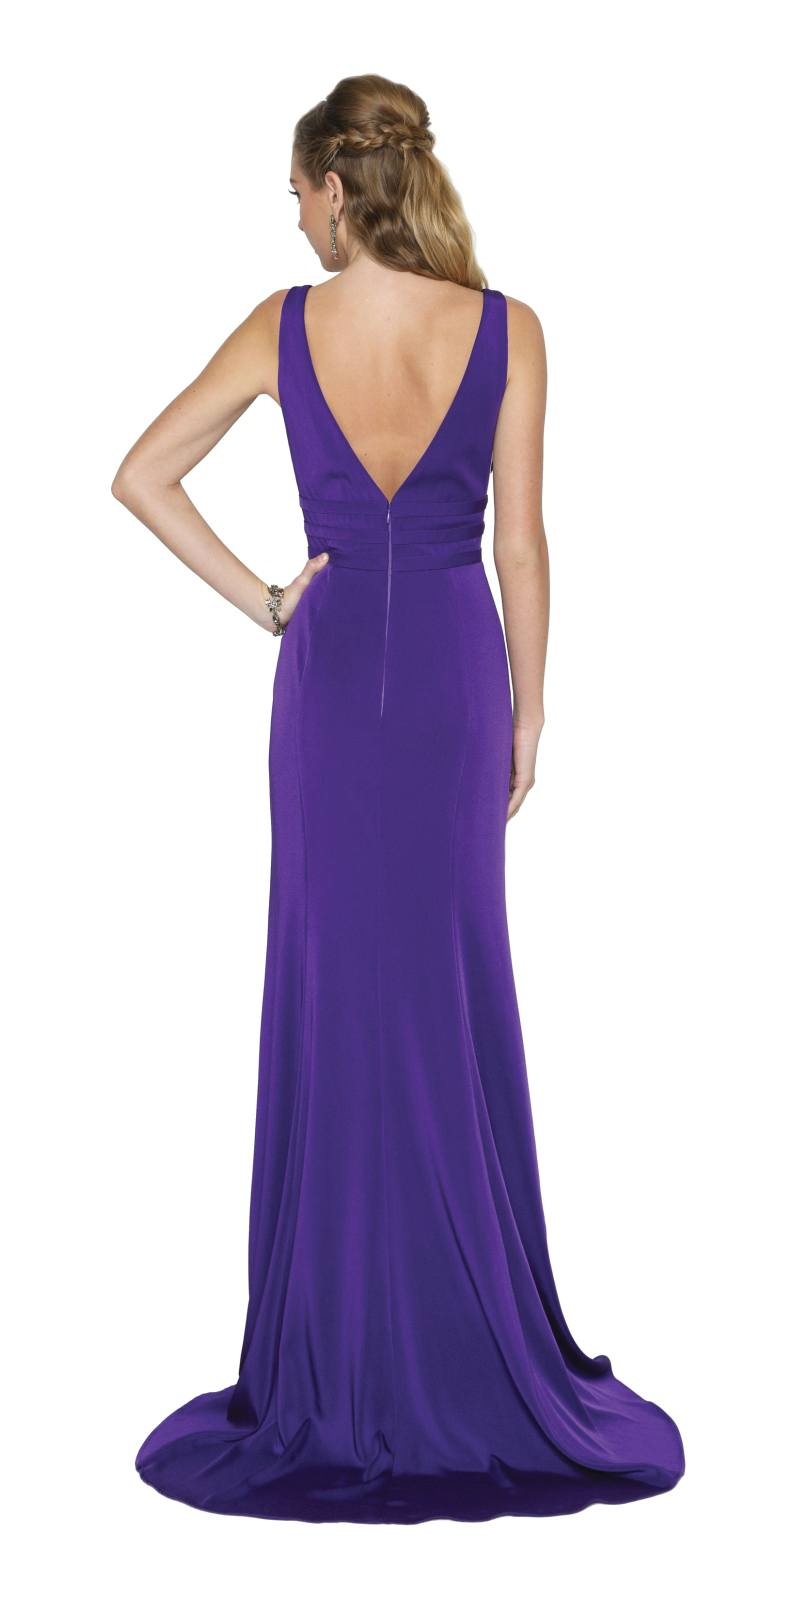 Juliet 674 Purple Long Prom Dress Deep V-Neck with Sheer Inset ...